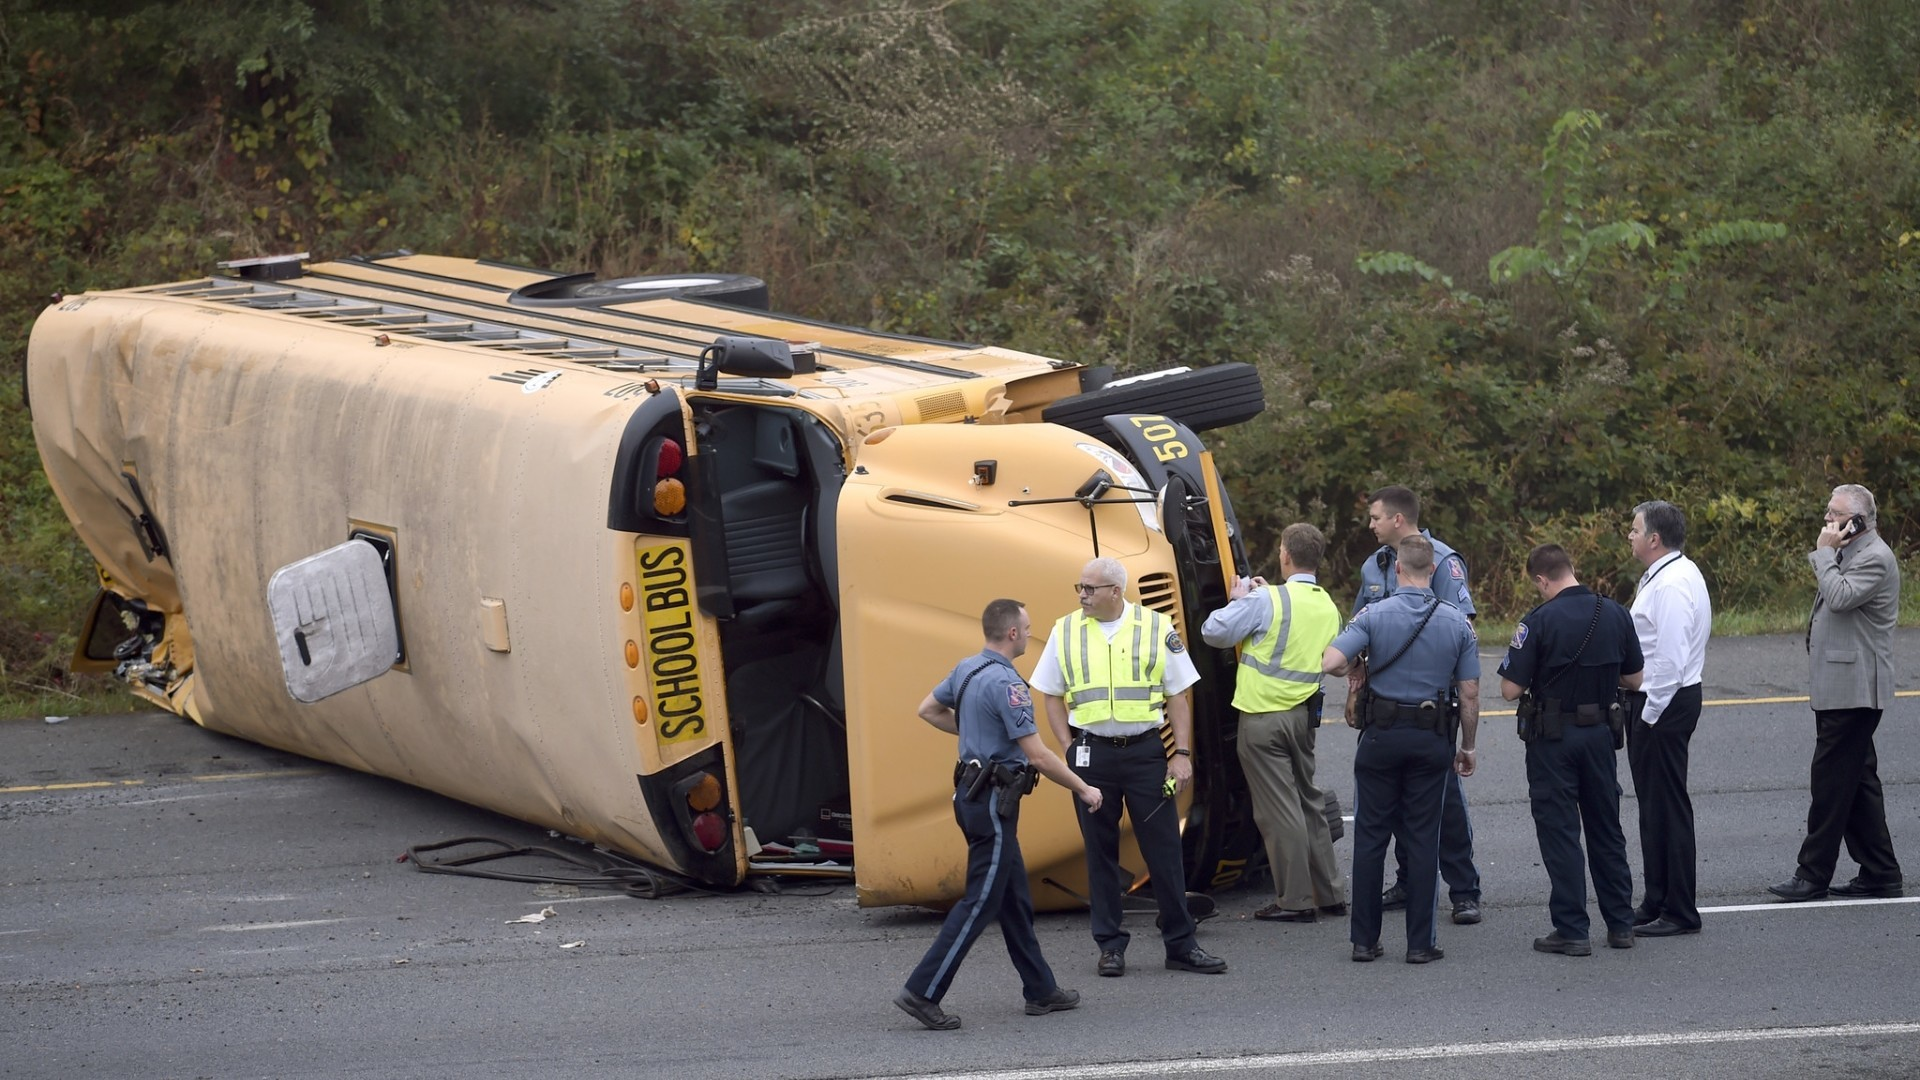 School bus overturns on MD-29 - Baltimore Sun